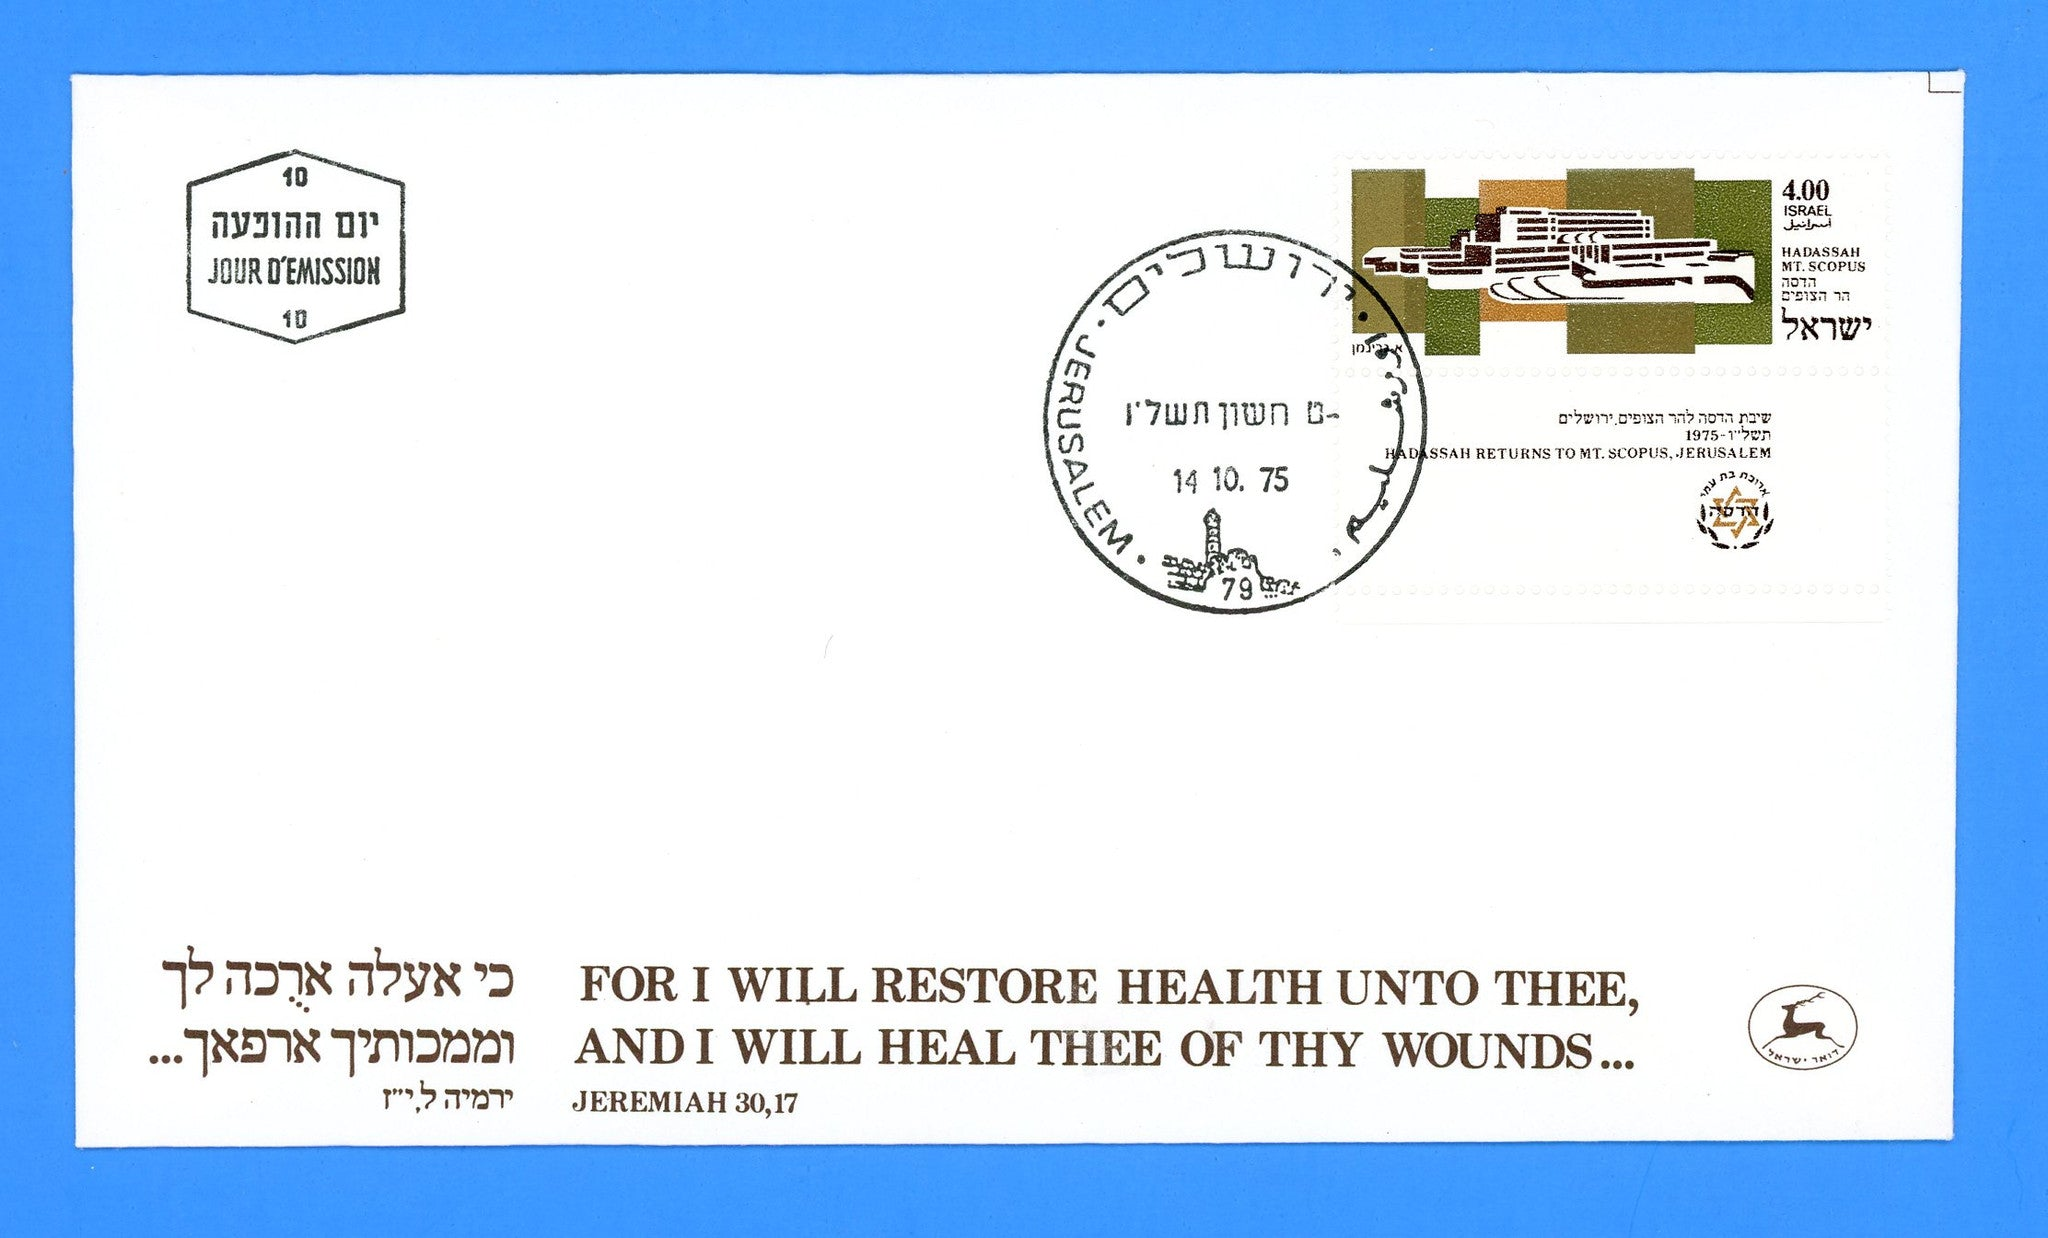 Israel - Scott 576 Return of Hadassah to Mt. Scopus, Jerusalem First Day Cover